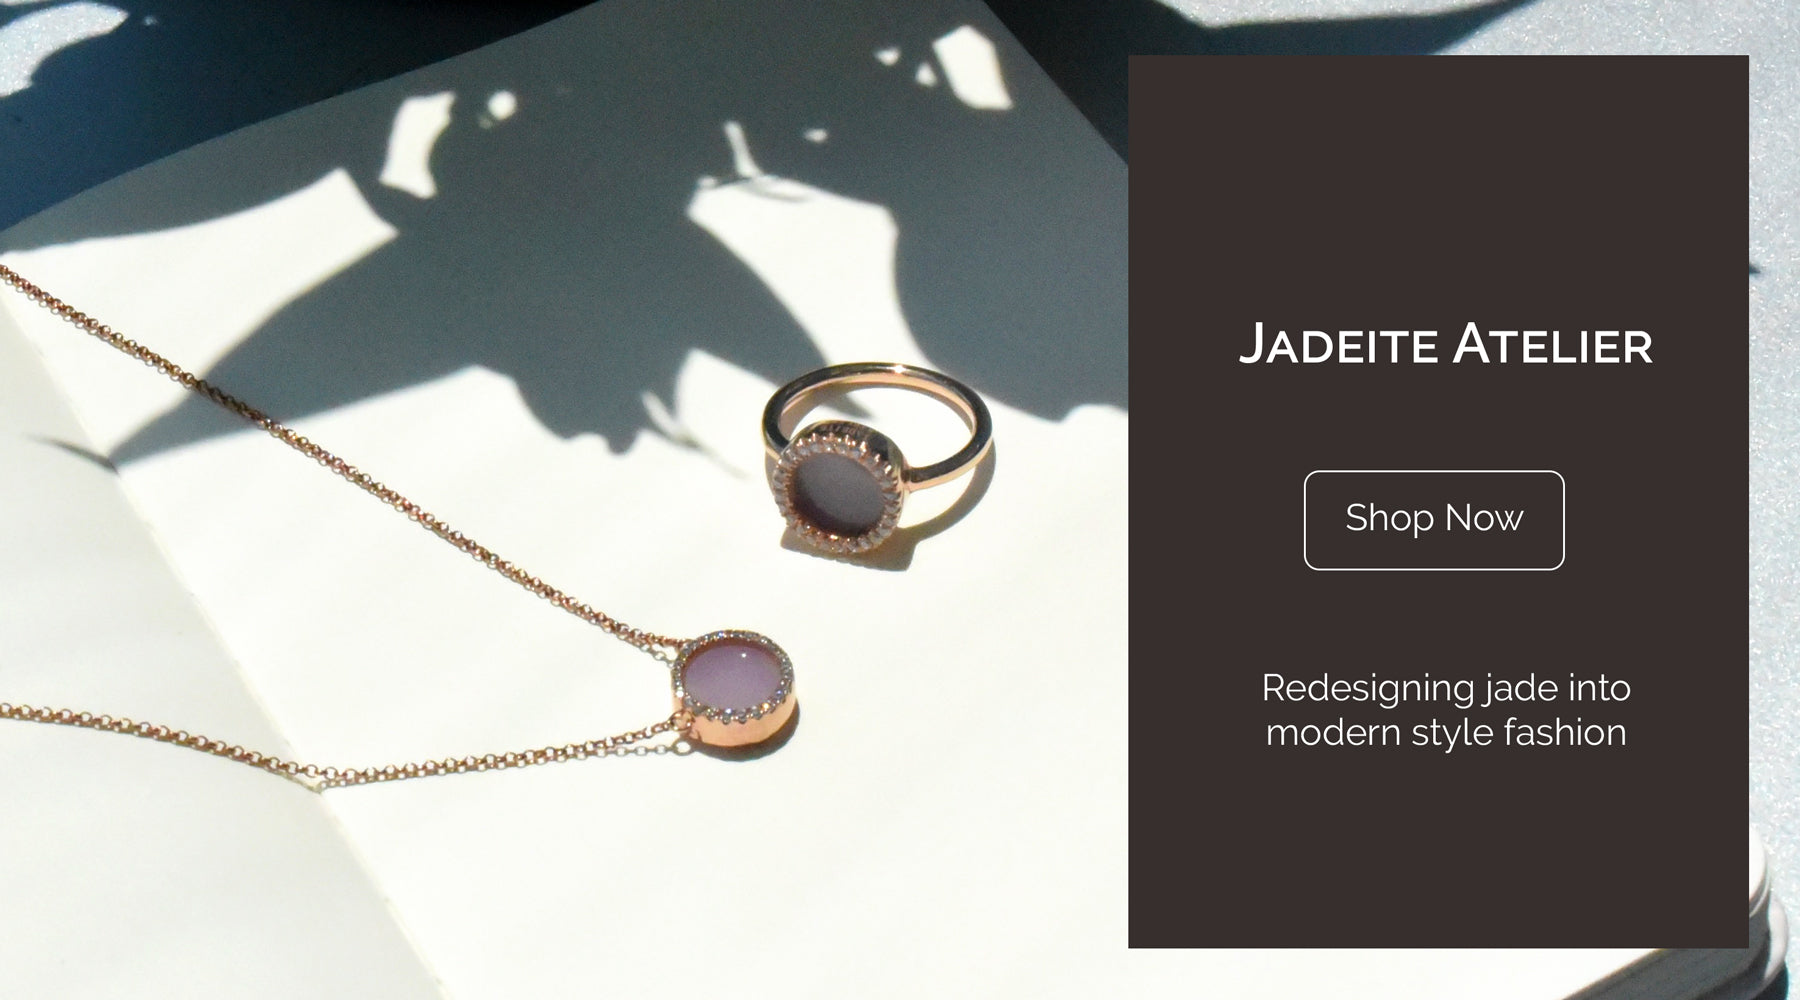 lavender pink jade ring necklace jadeite jewellery